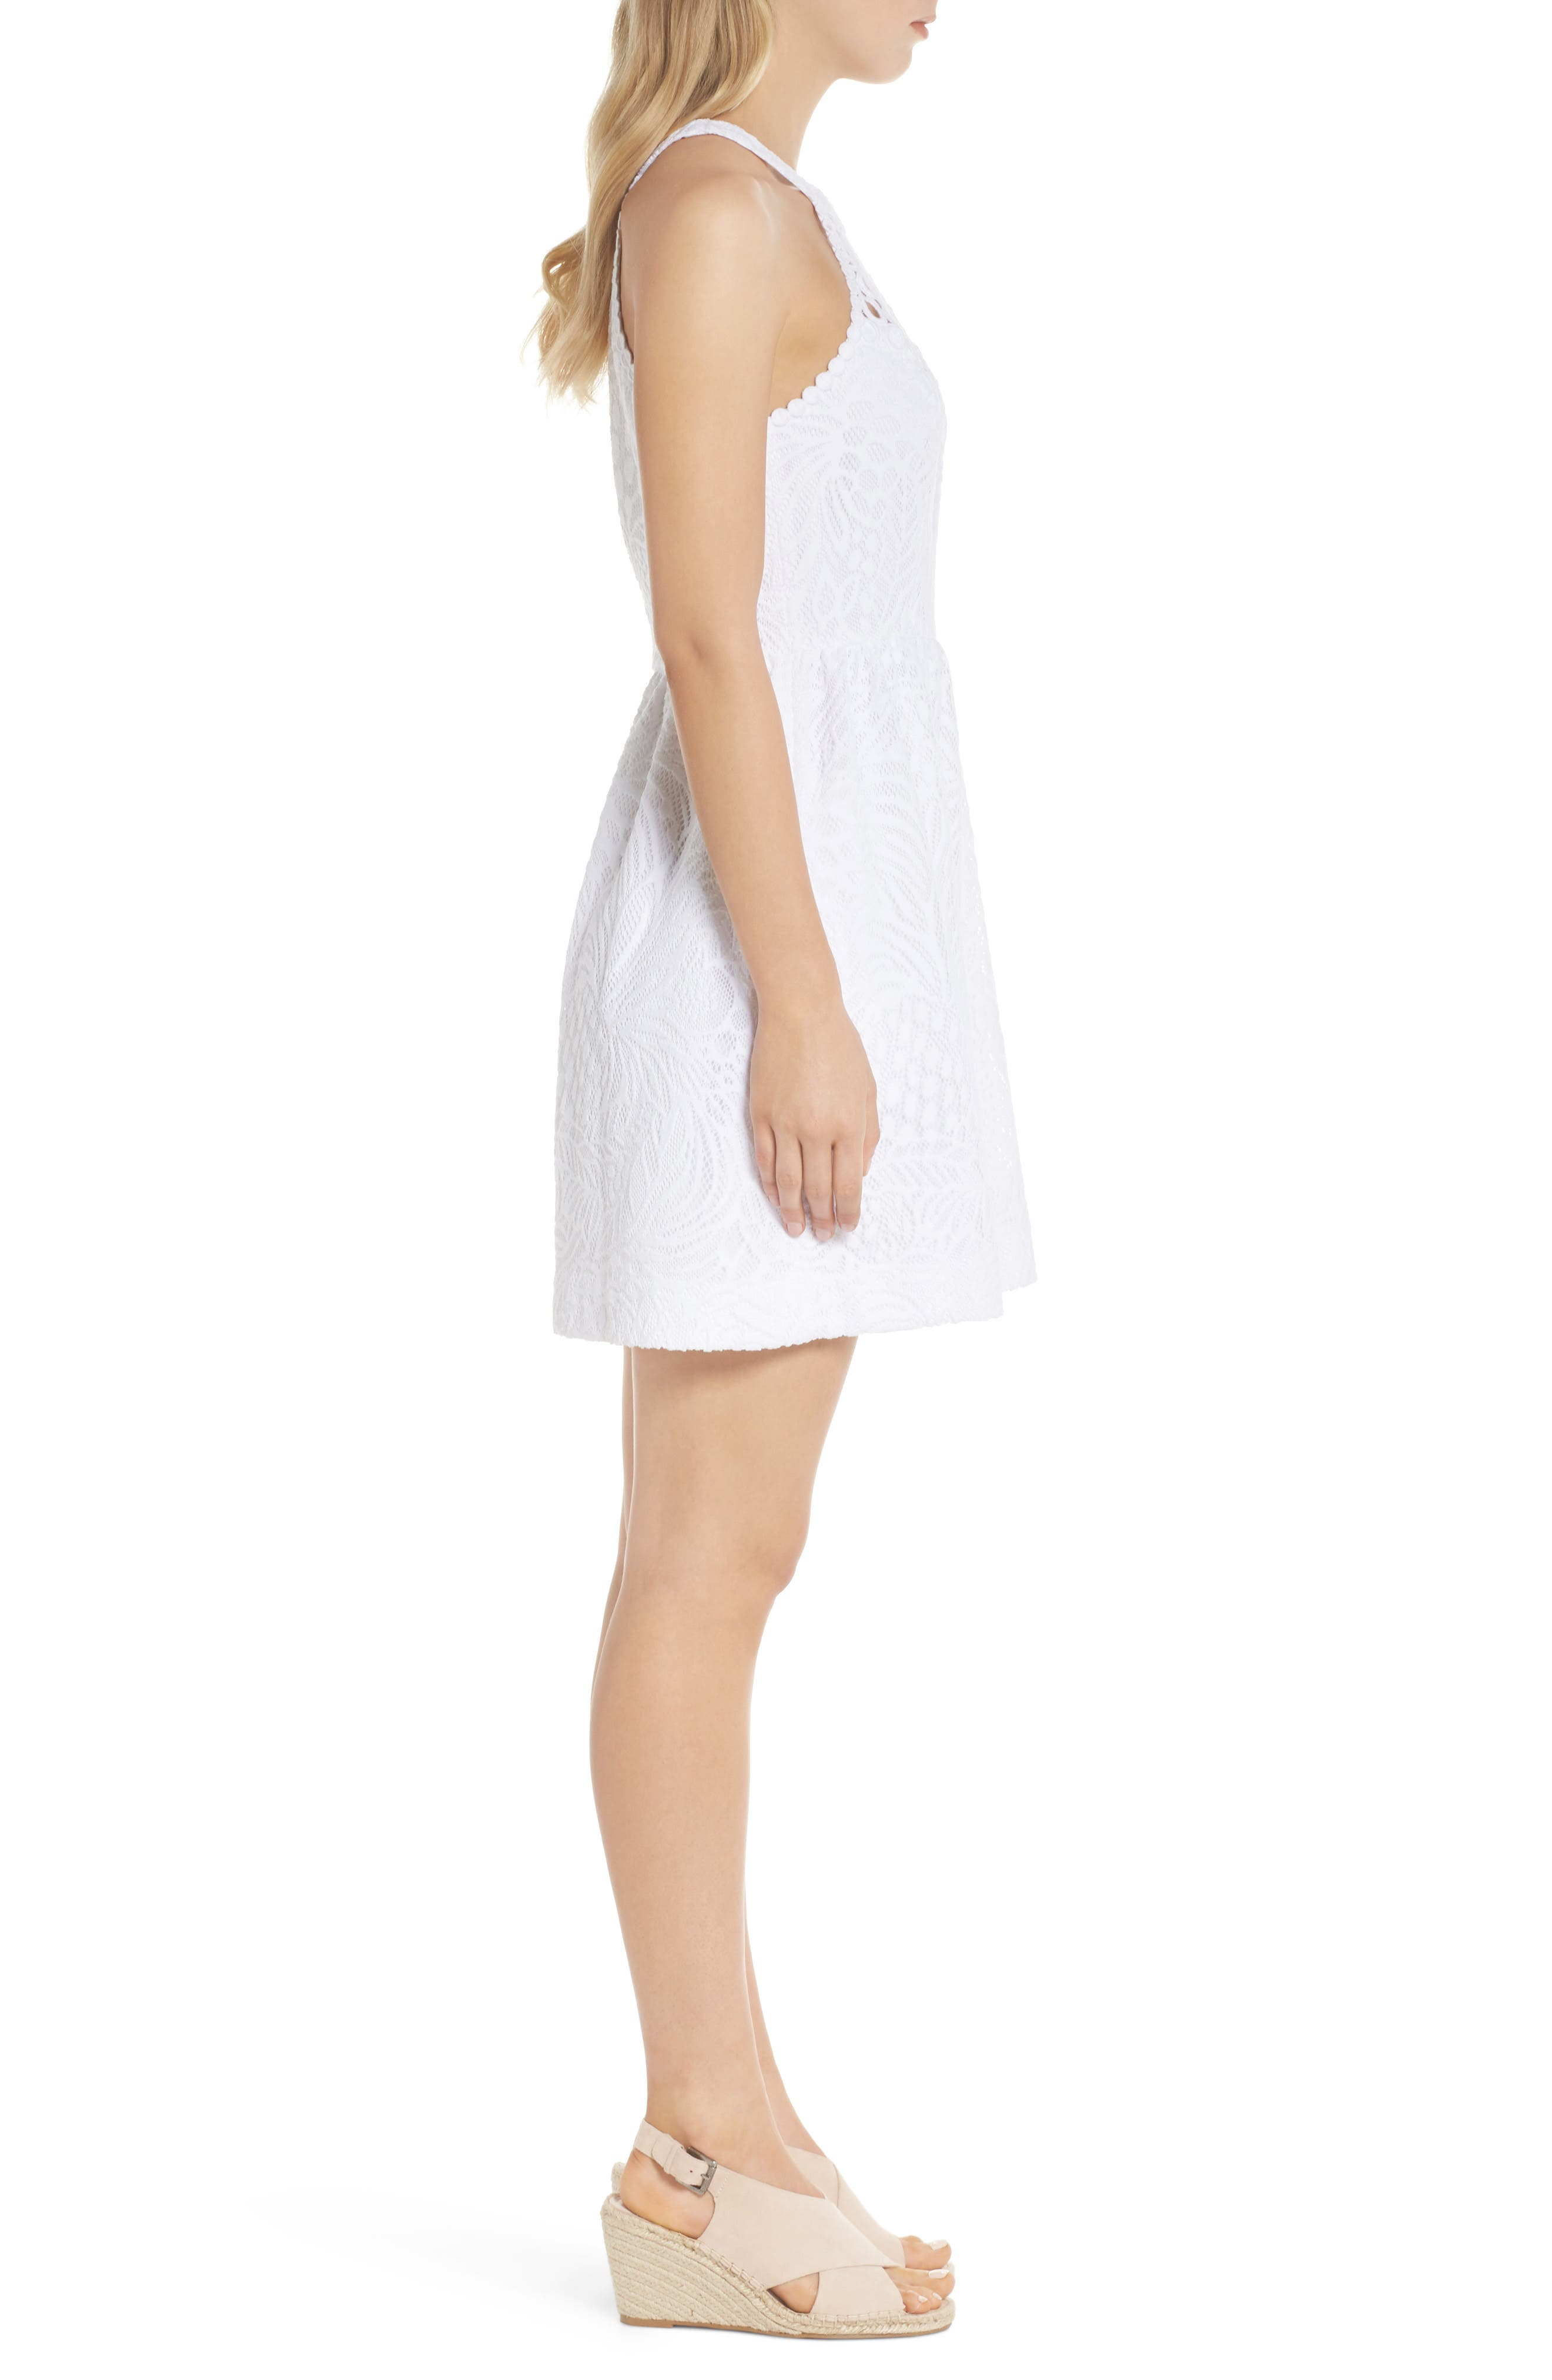 Kinley Halter Dress,                             Alternate thumbnail 3, color,                             Resort White Tropical Lace